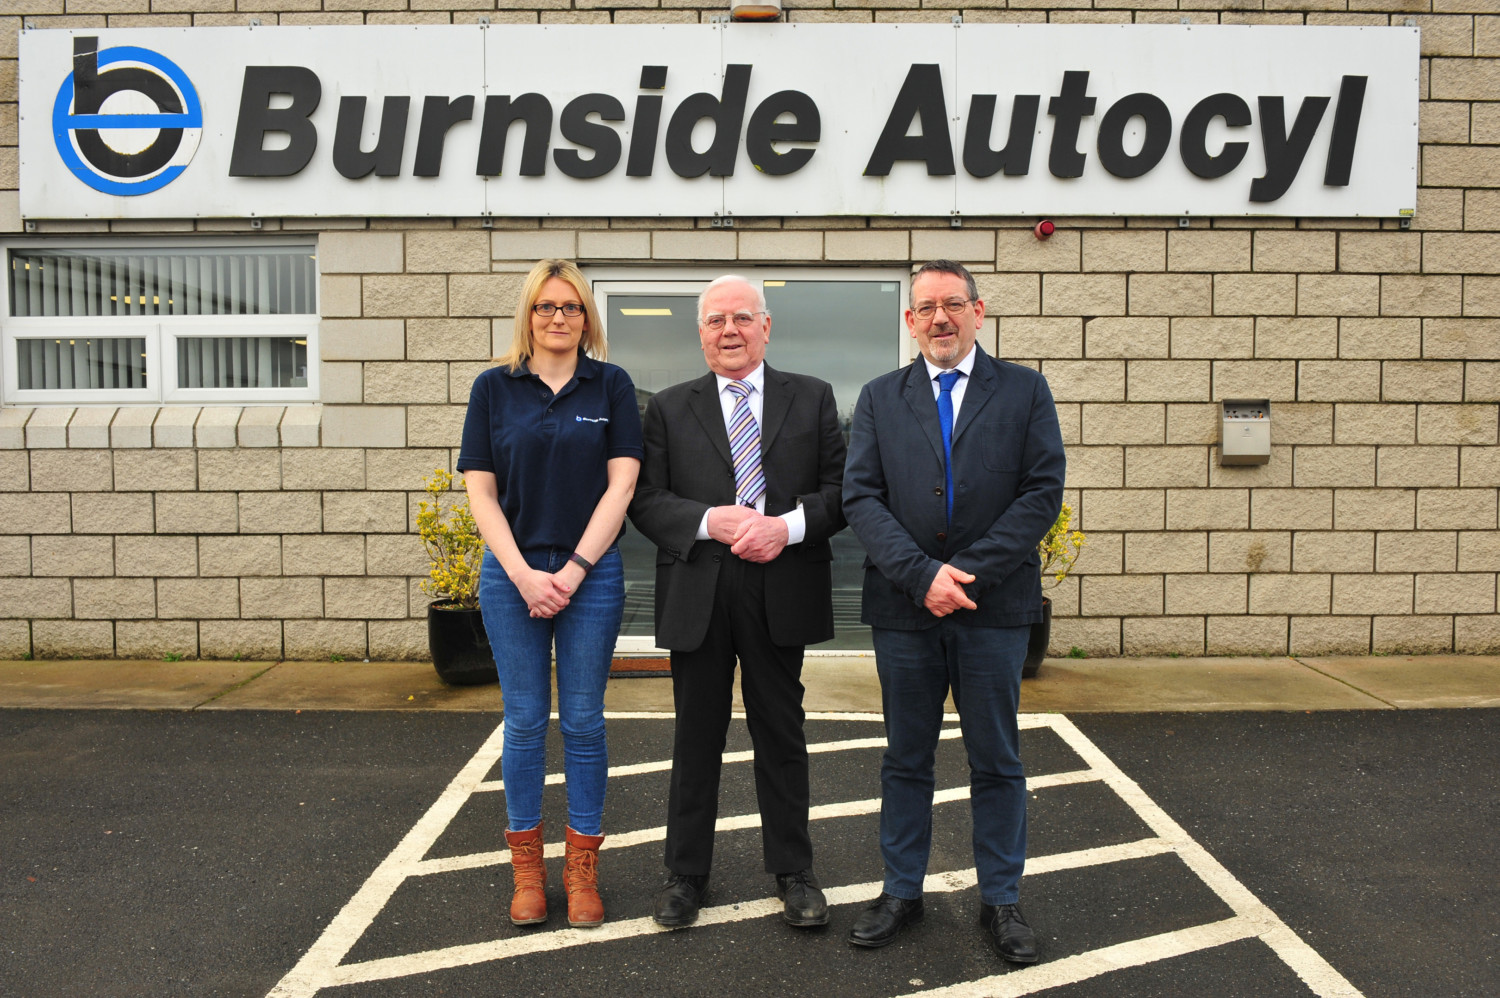 Humble but passionate beginnings led Burnside Autocyl on journey to become global OEM auto supplier